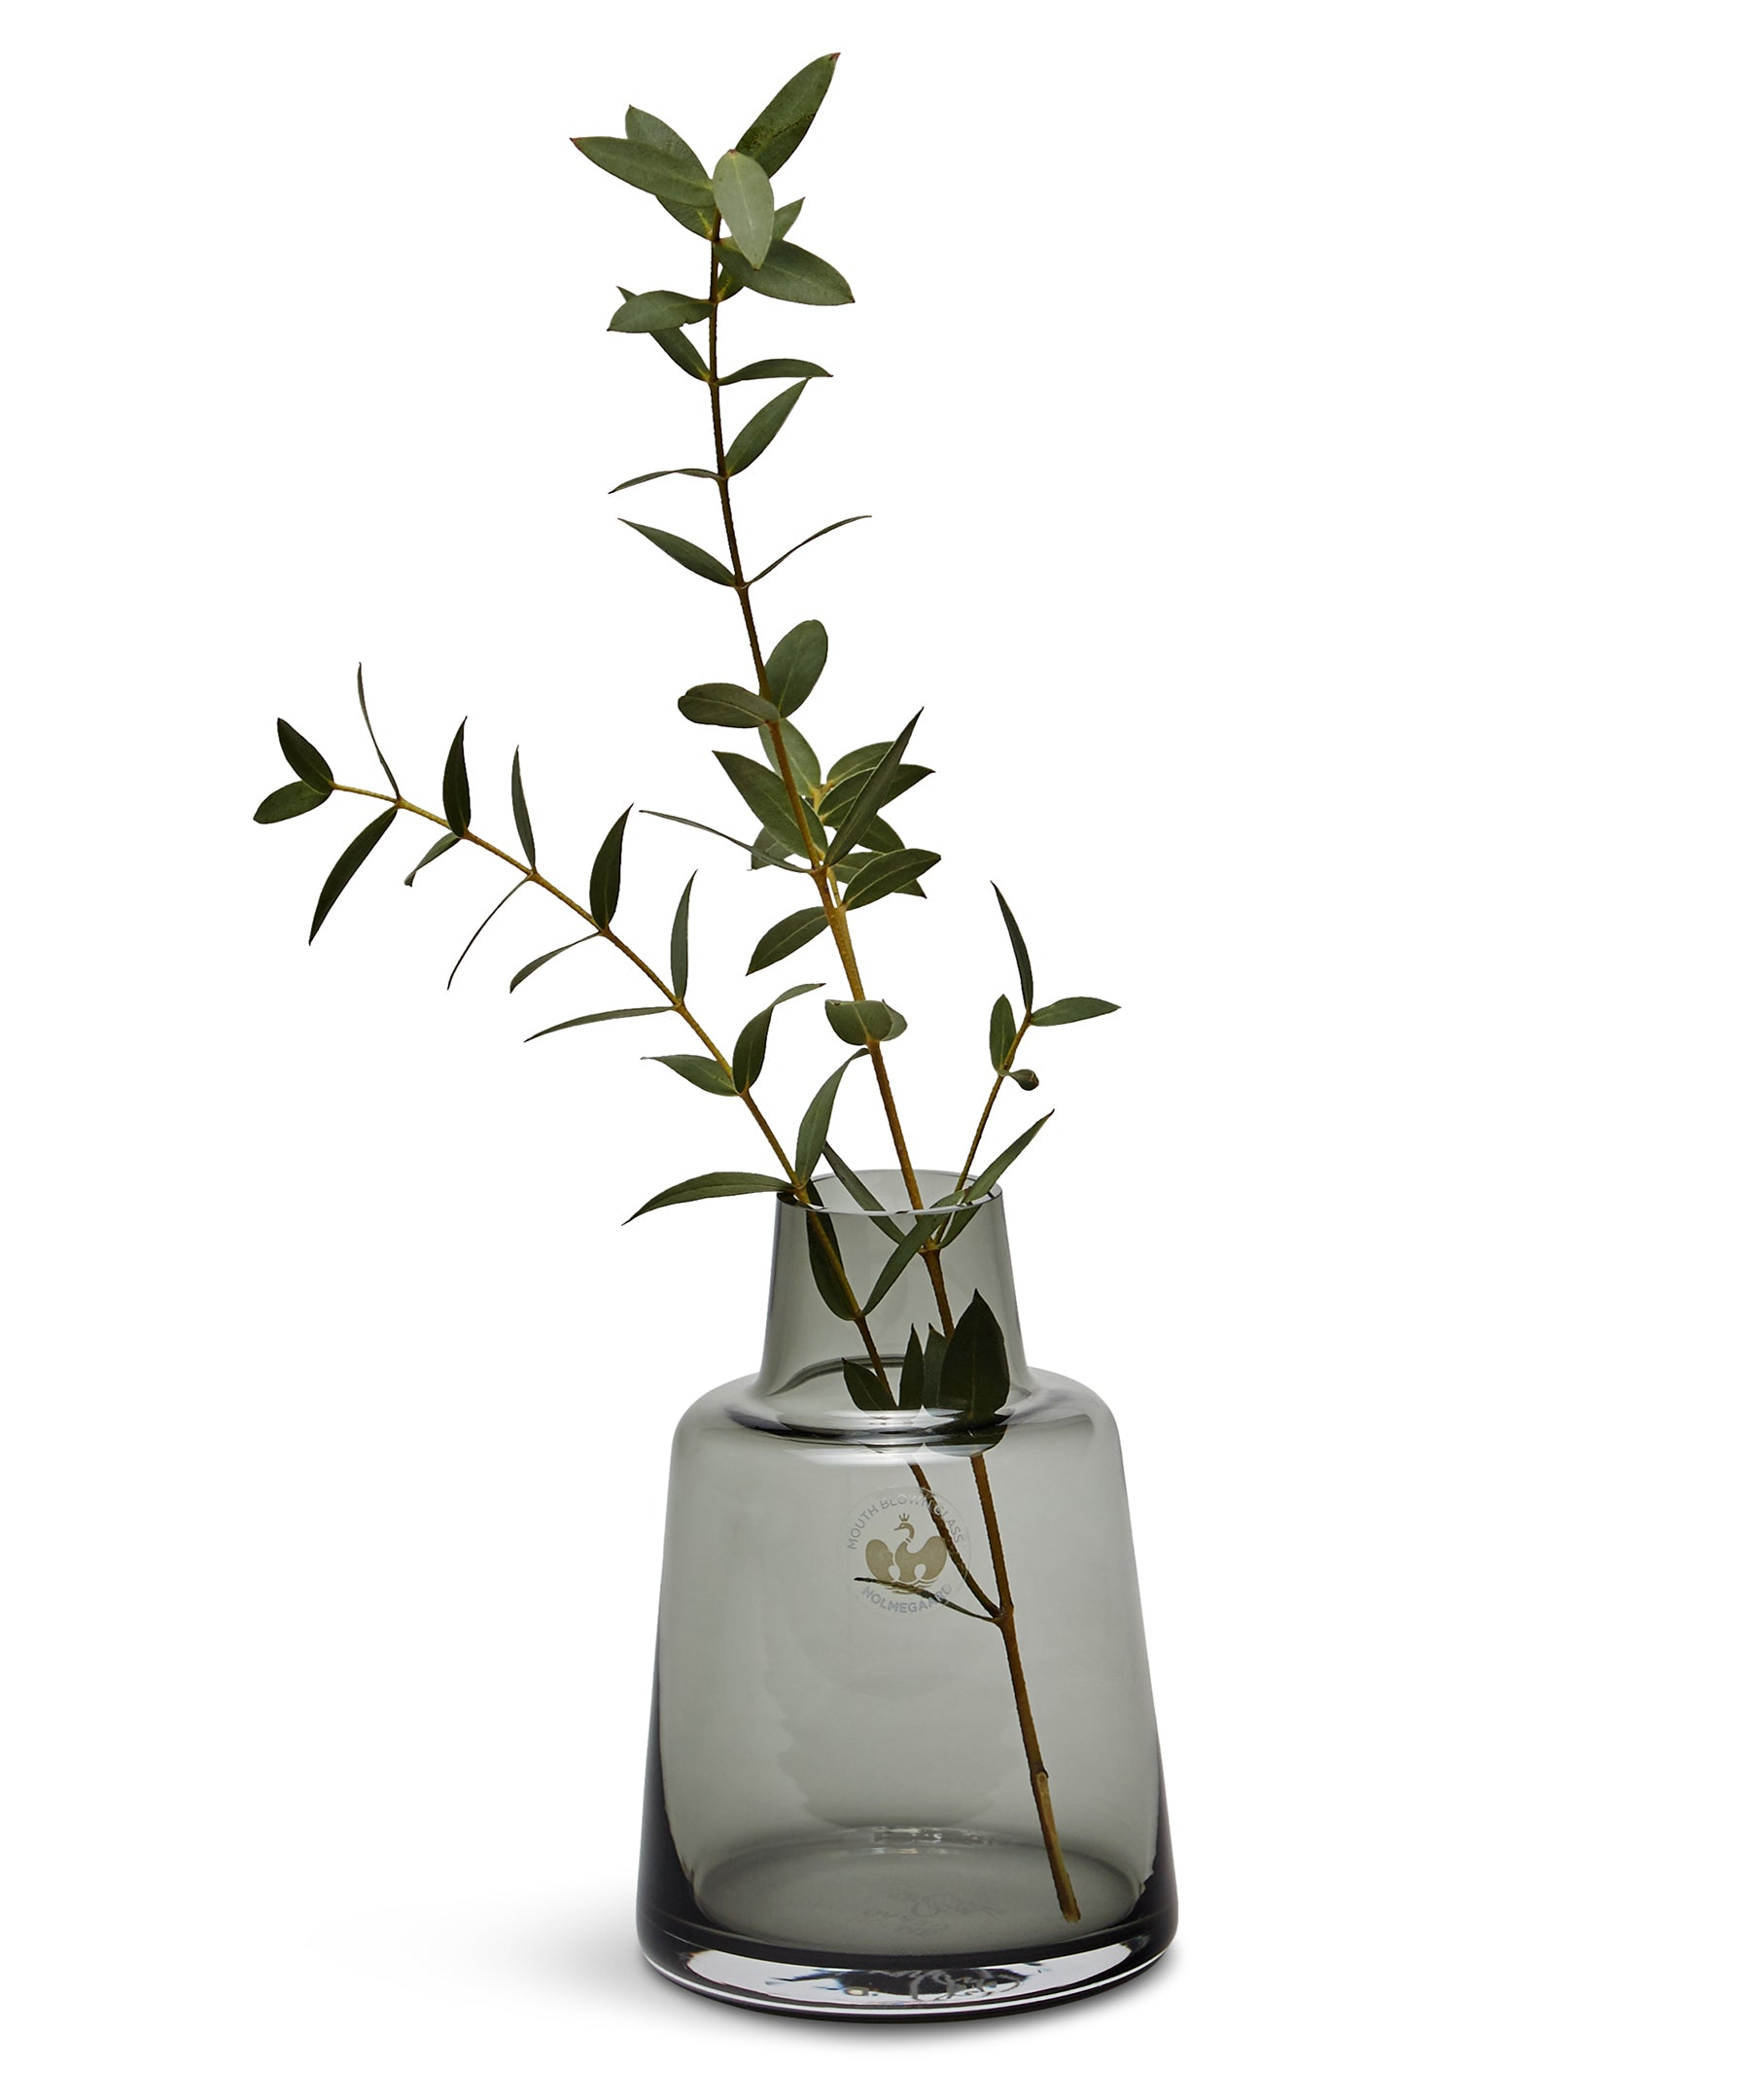 Flora Short Neck Vase 120mm (Smoke) by Holmegaard